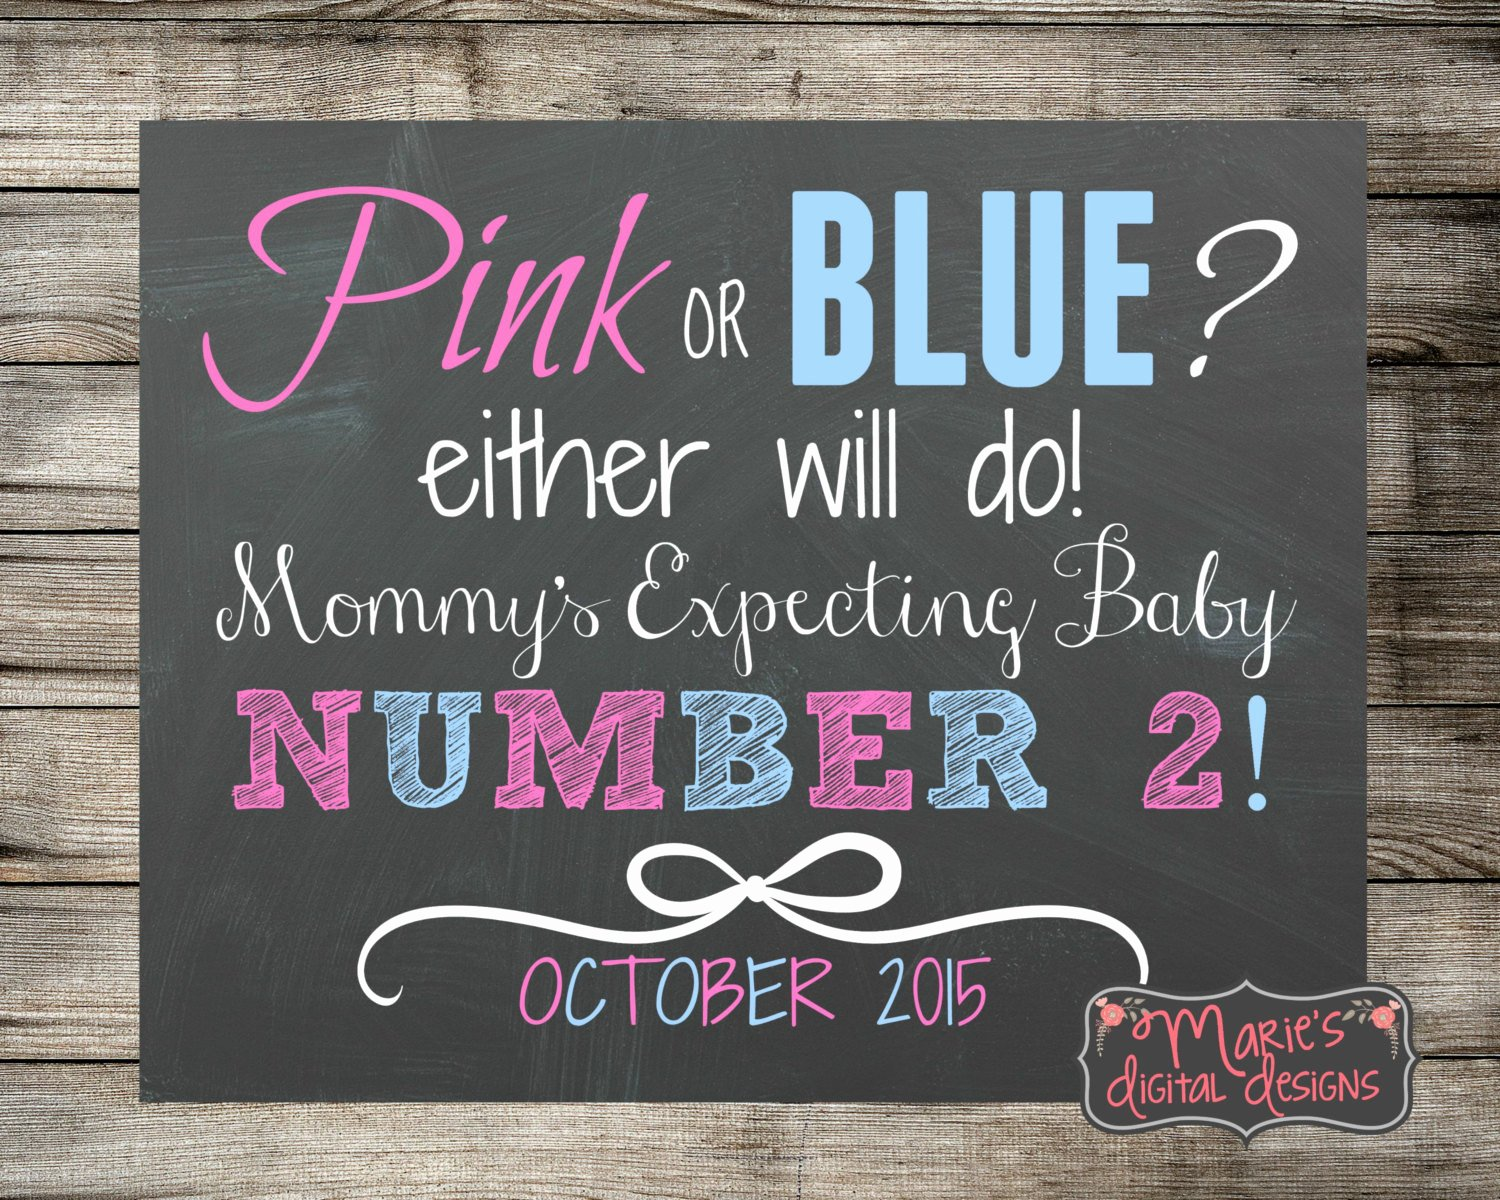 Free Printable Pregnancy Announcements Elegant Printable Pregnancy Announcement Pink or Blue Prop